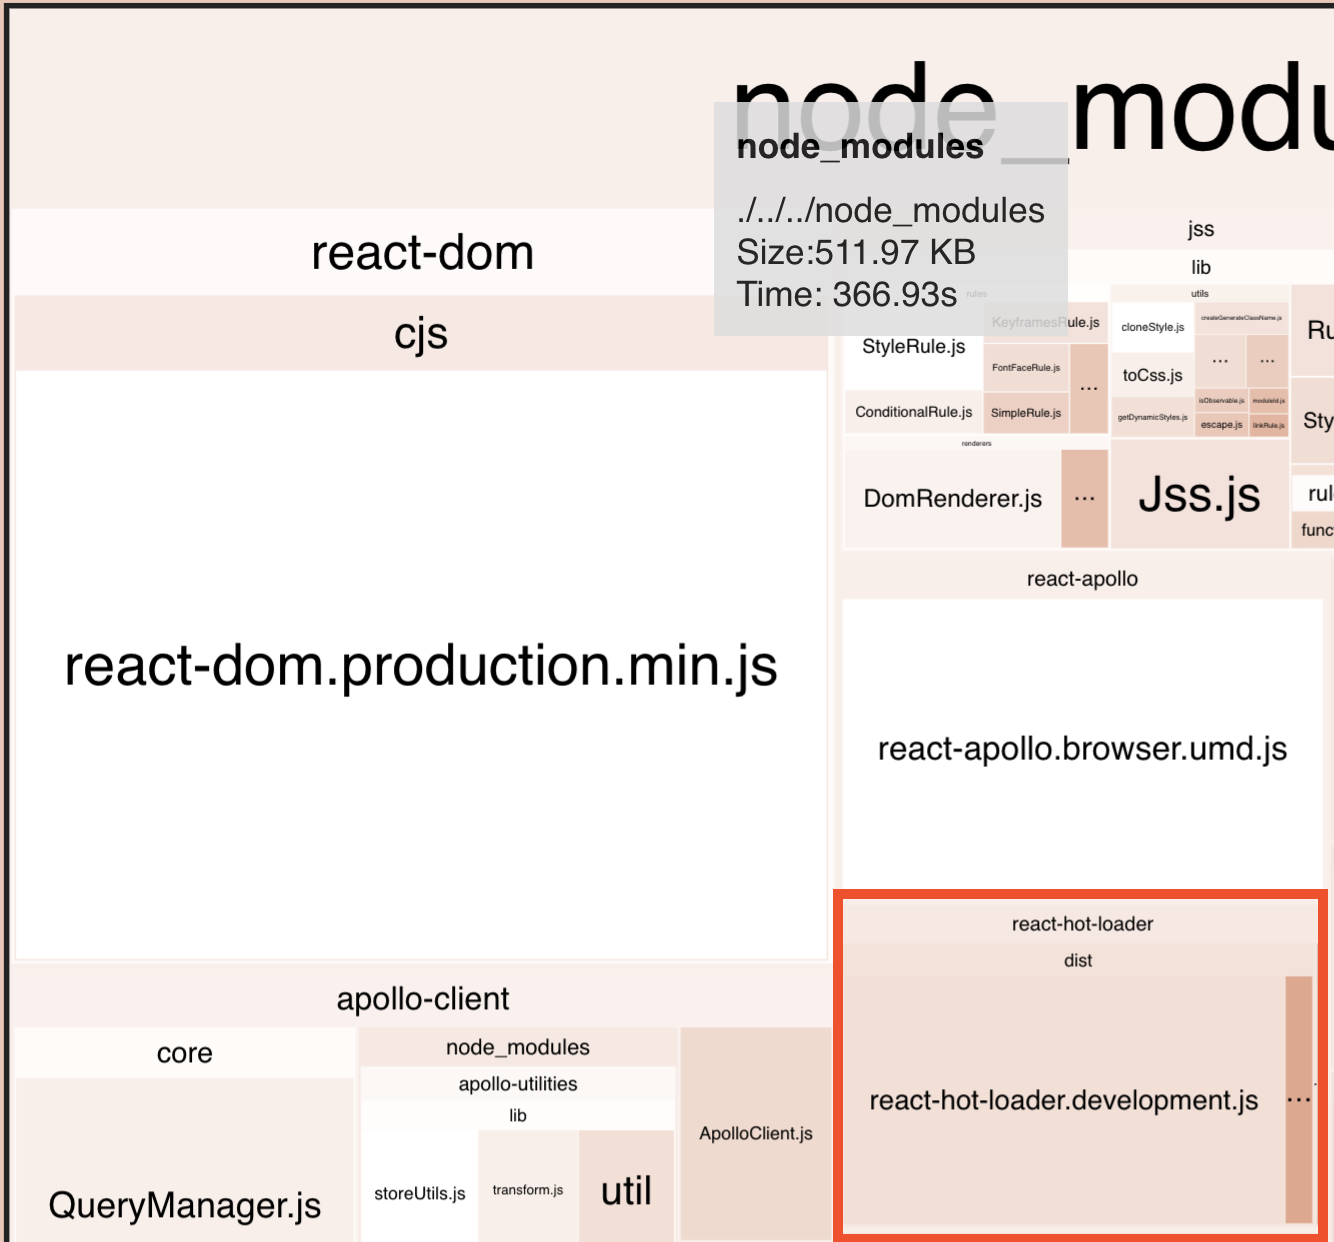 react-hot-loader development build is added to the production bundle